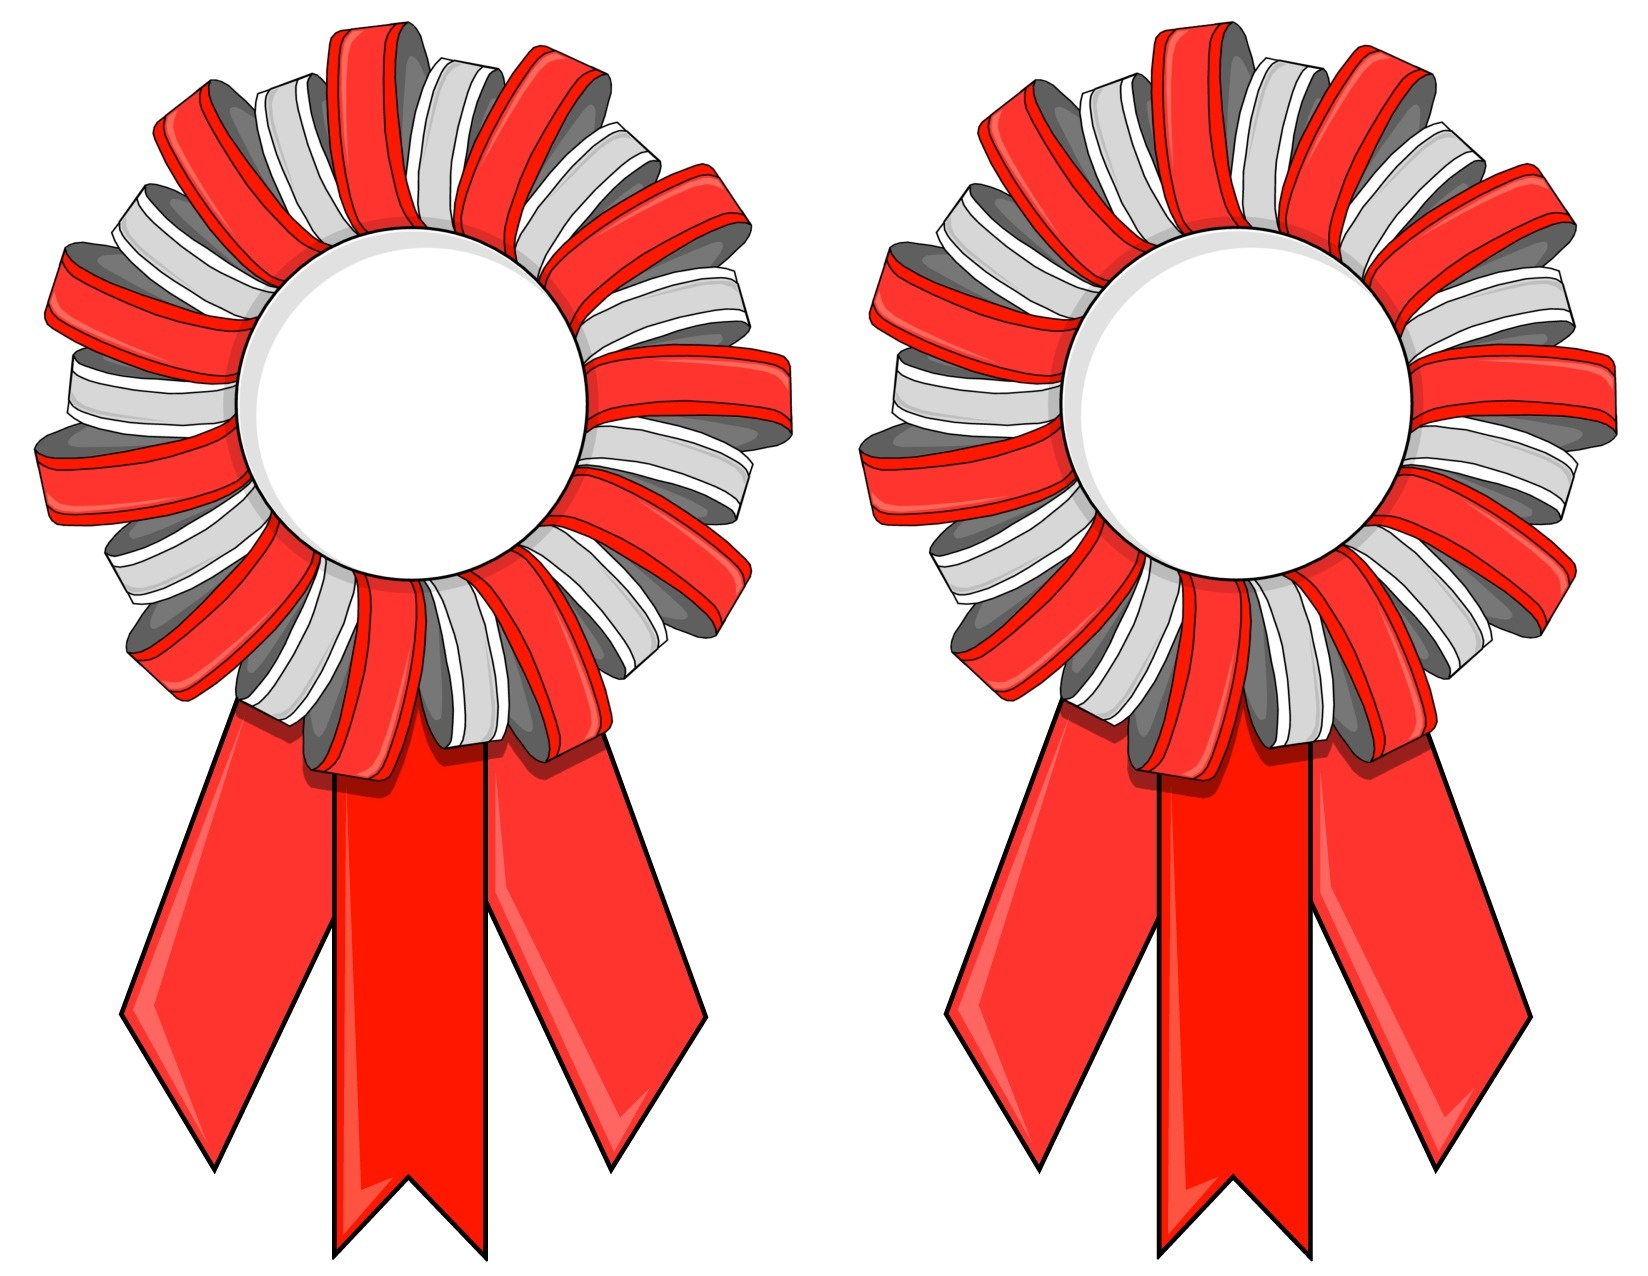 Printable Contest Ribbons Or Tournament Ribbons - Free Printable Ribbons